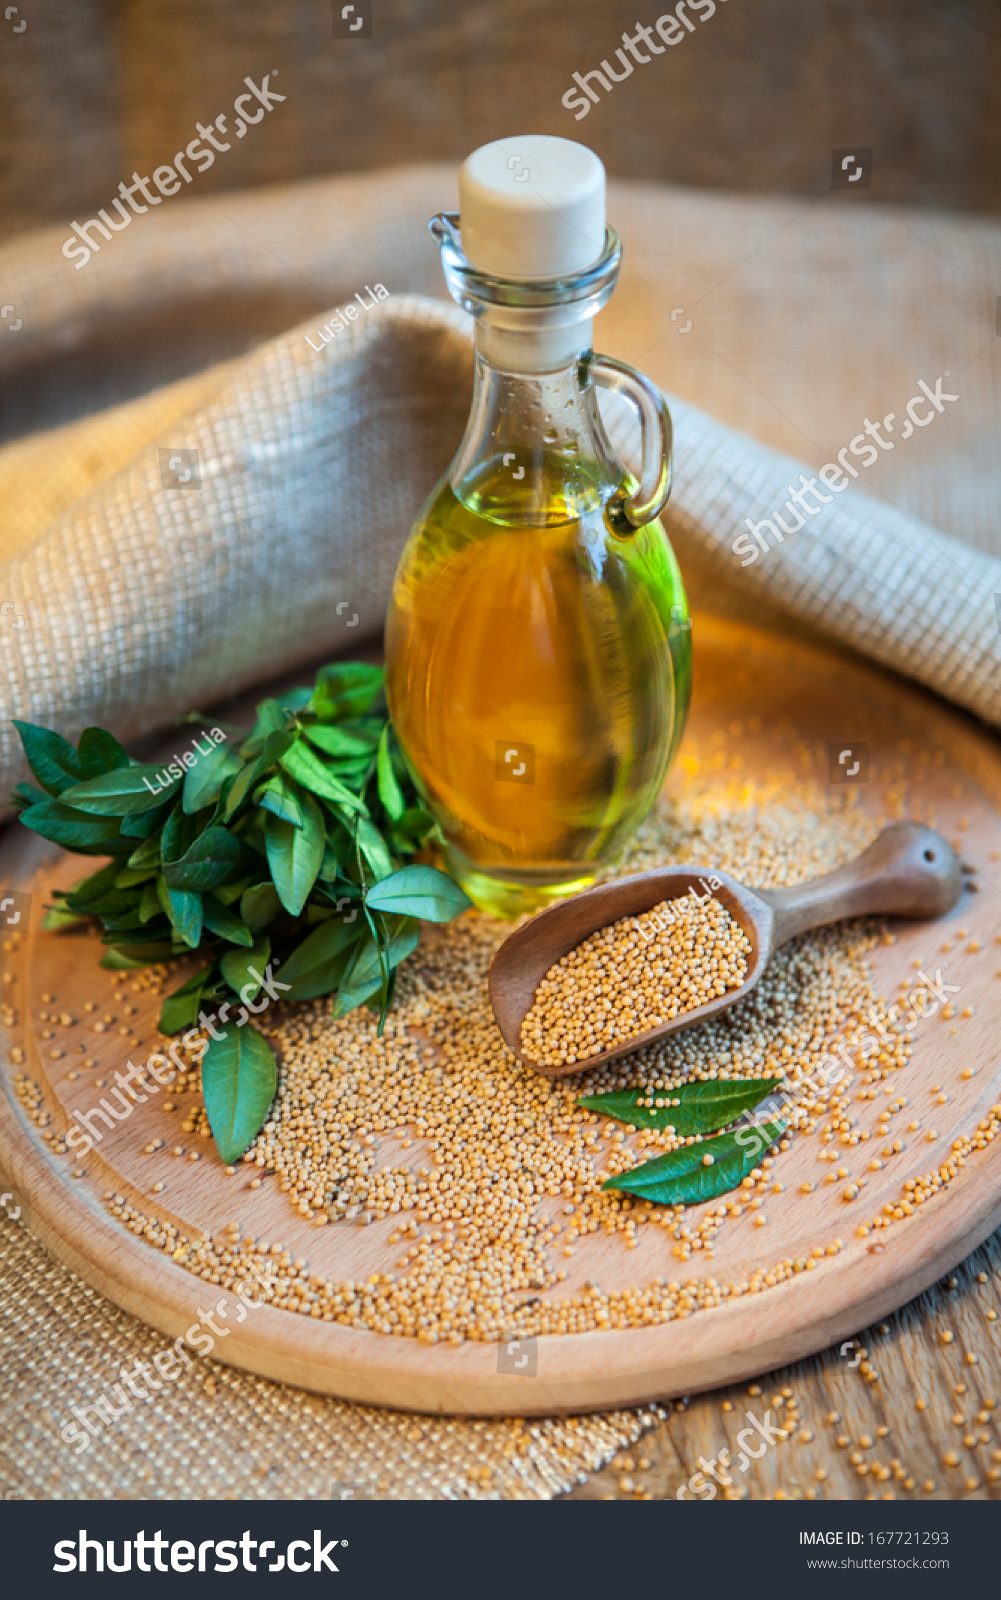 mustard oil in a vessel with seeds on a wooden background